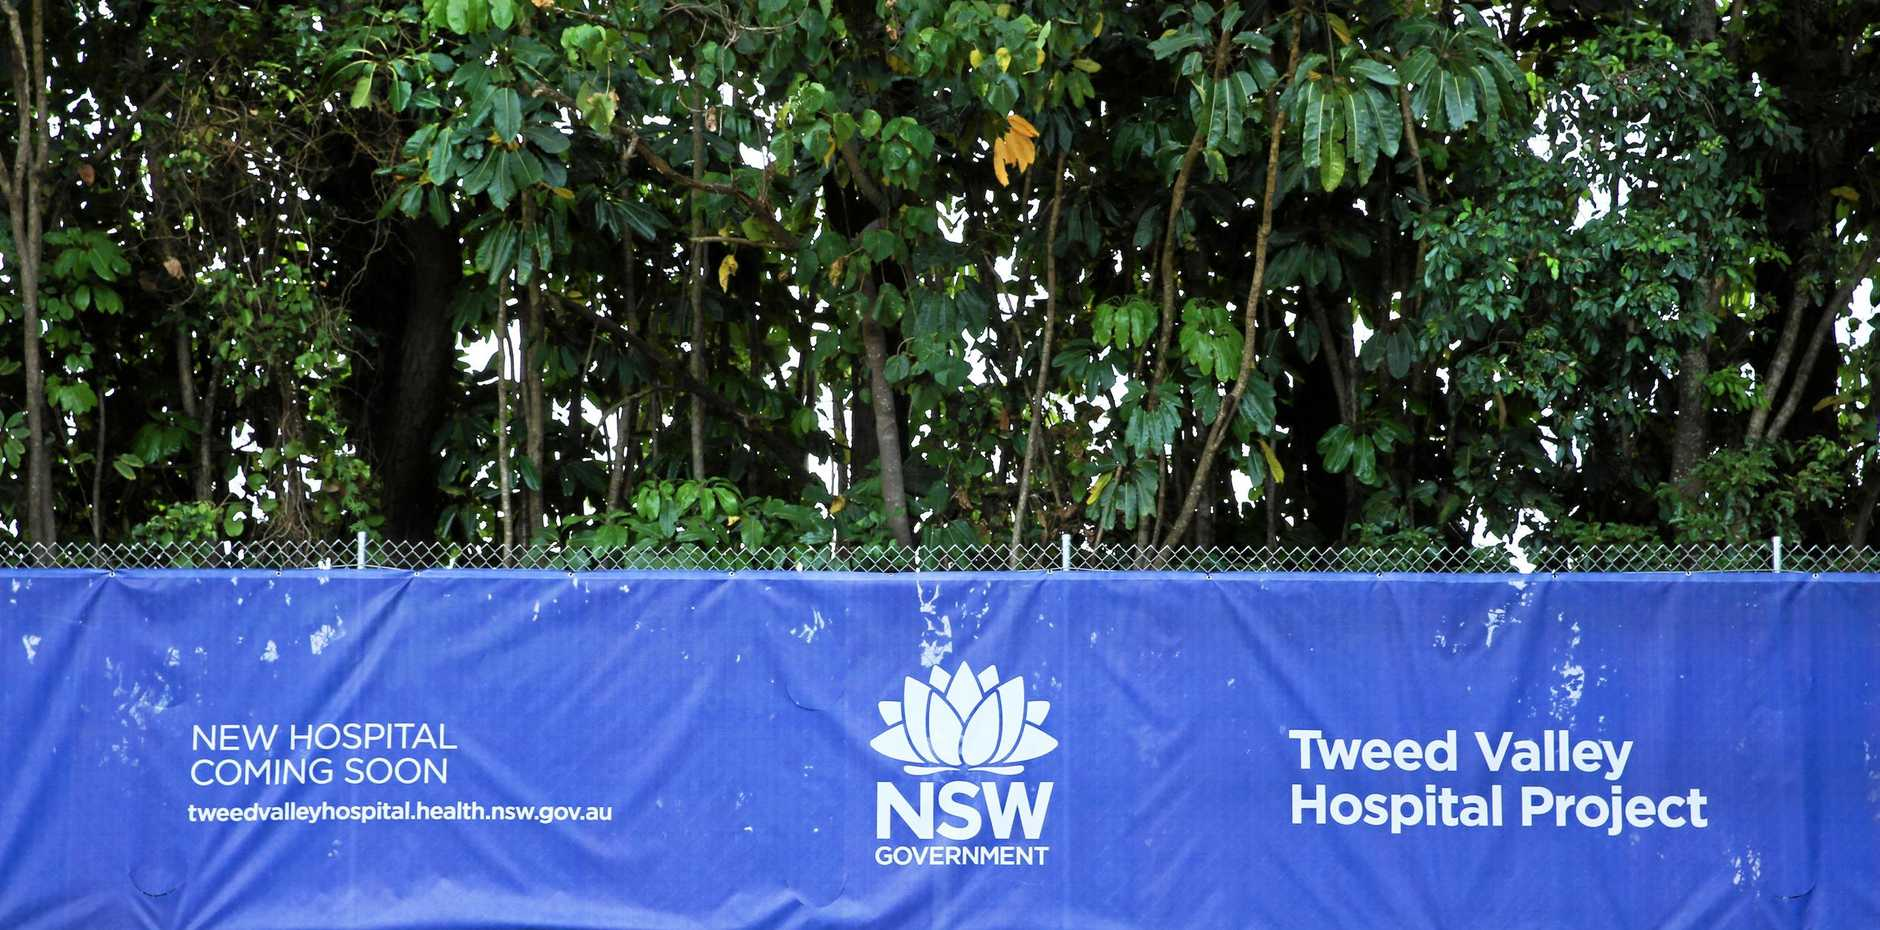 A security fence at the new Tweed Valley Hospital site at Cudgen.